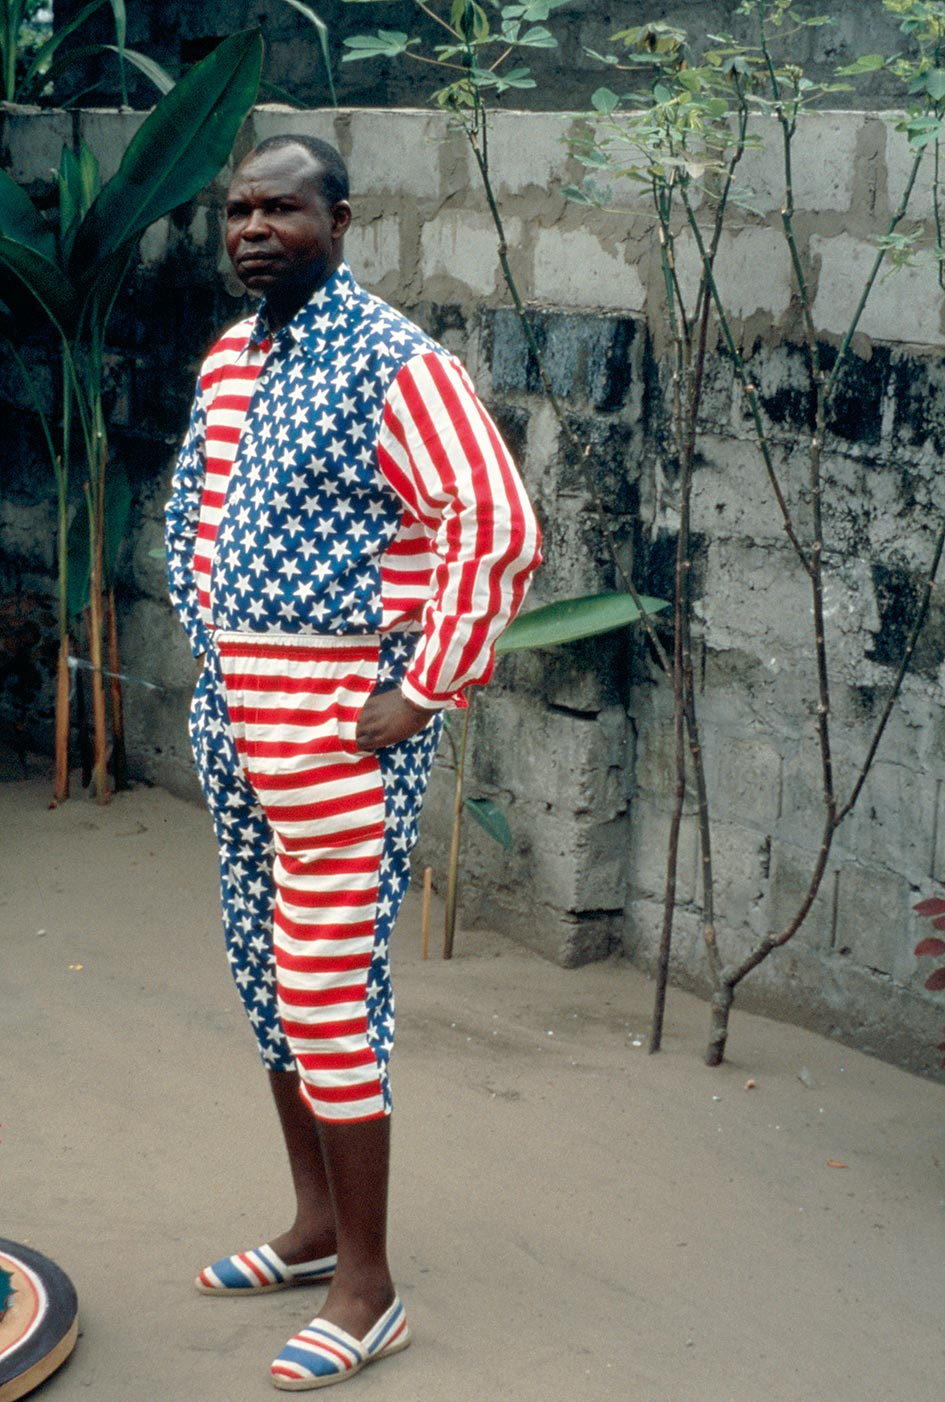 Bodys Isek Kingelez in Kinshasa, 1990. Courtesy André Magnin, Paris. Photo by André Magnin.